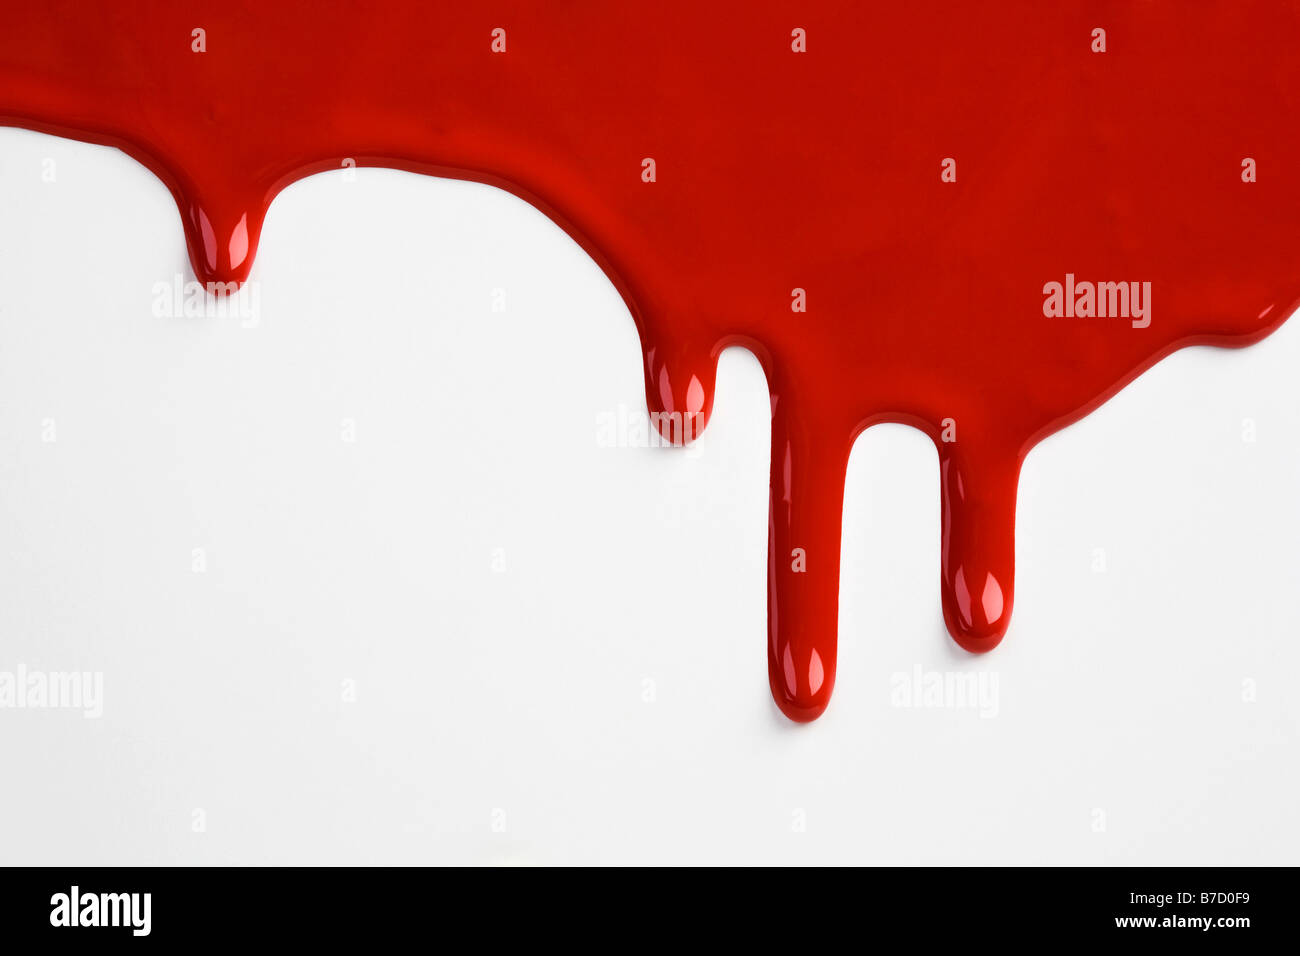 Red paint dripping down a white wall Stock Photo, Royalty Free ...